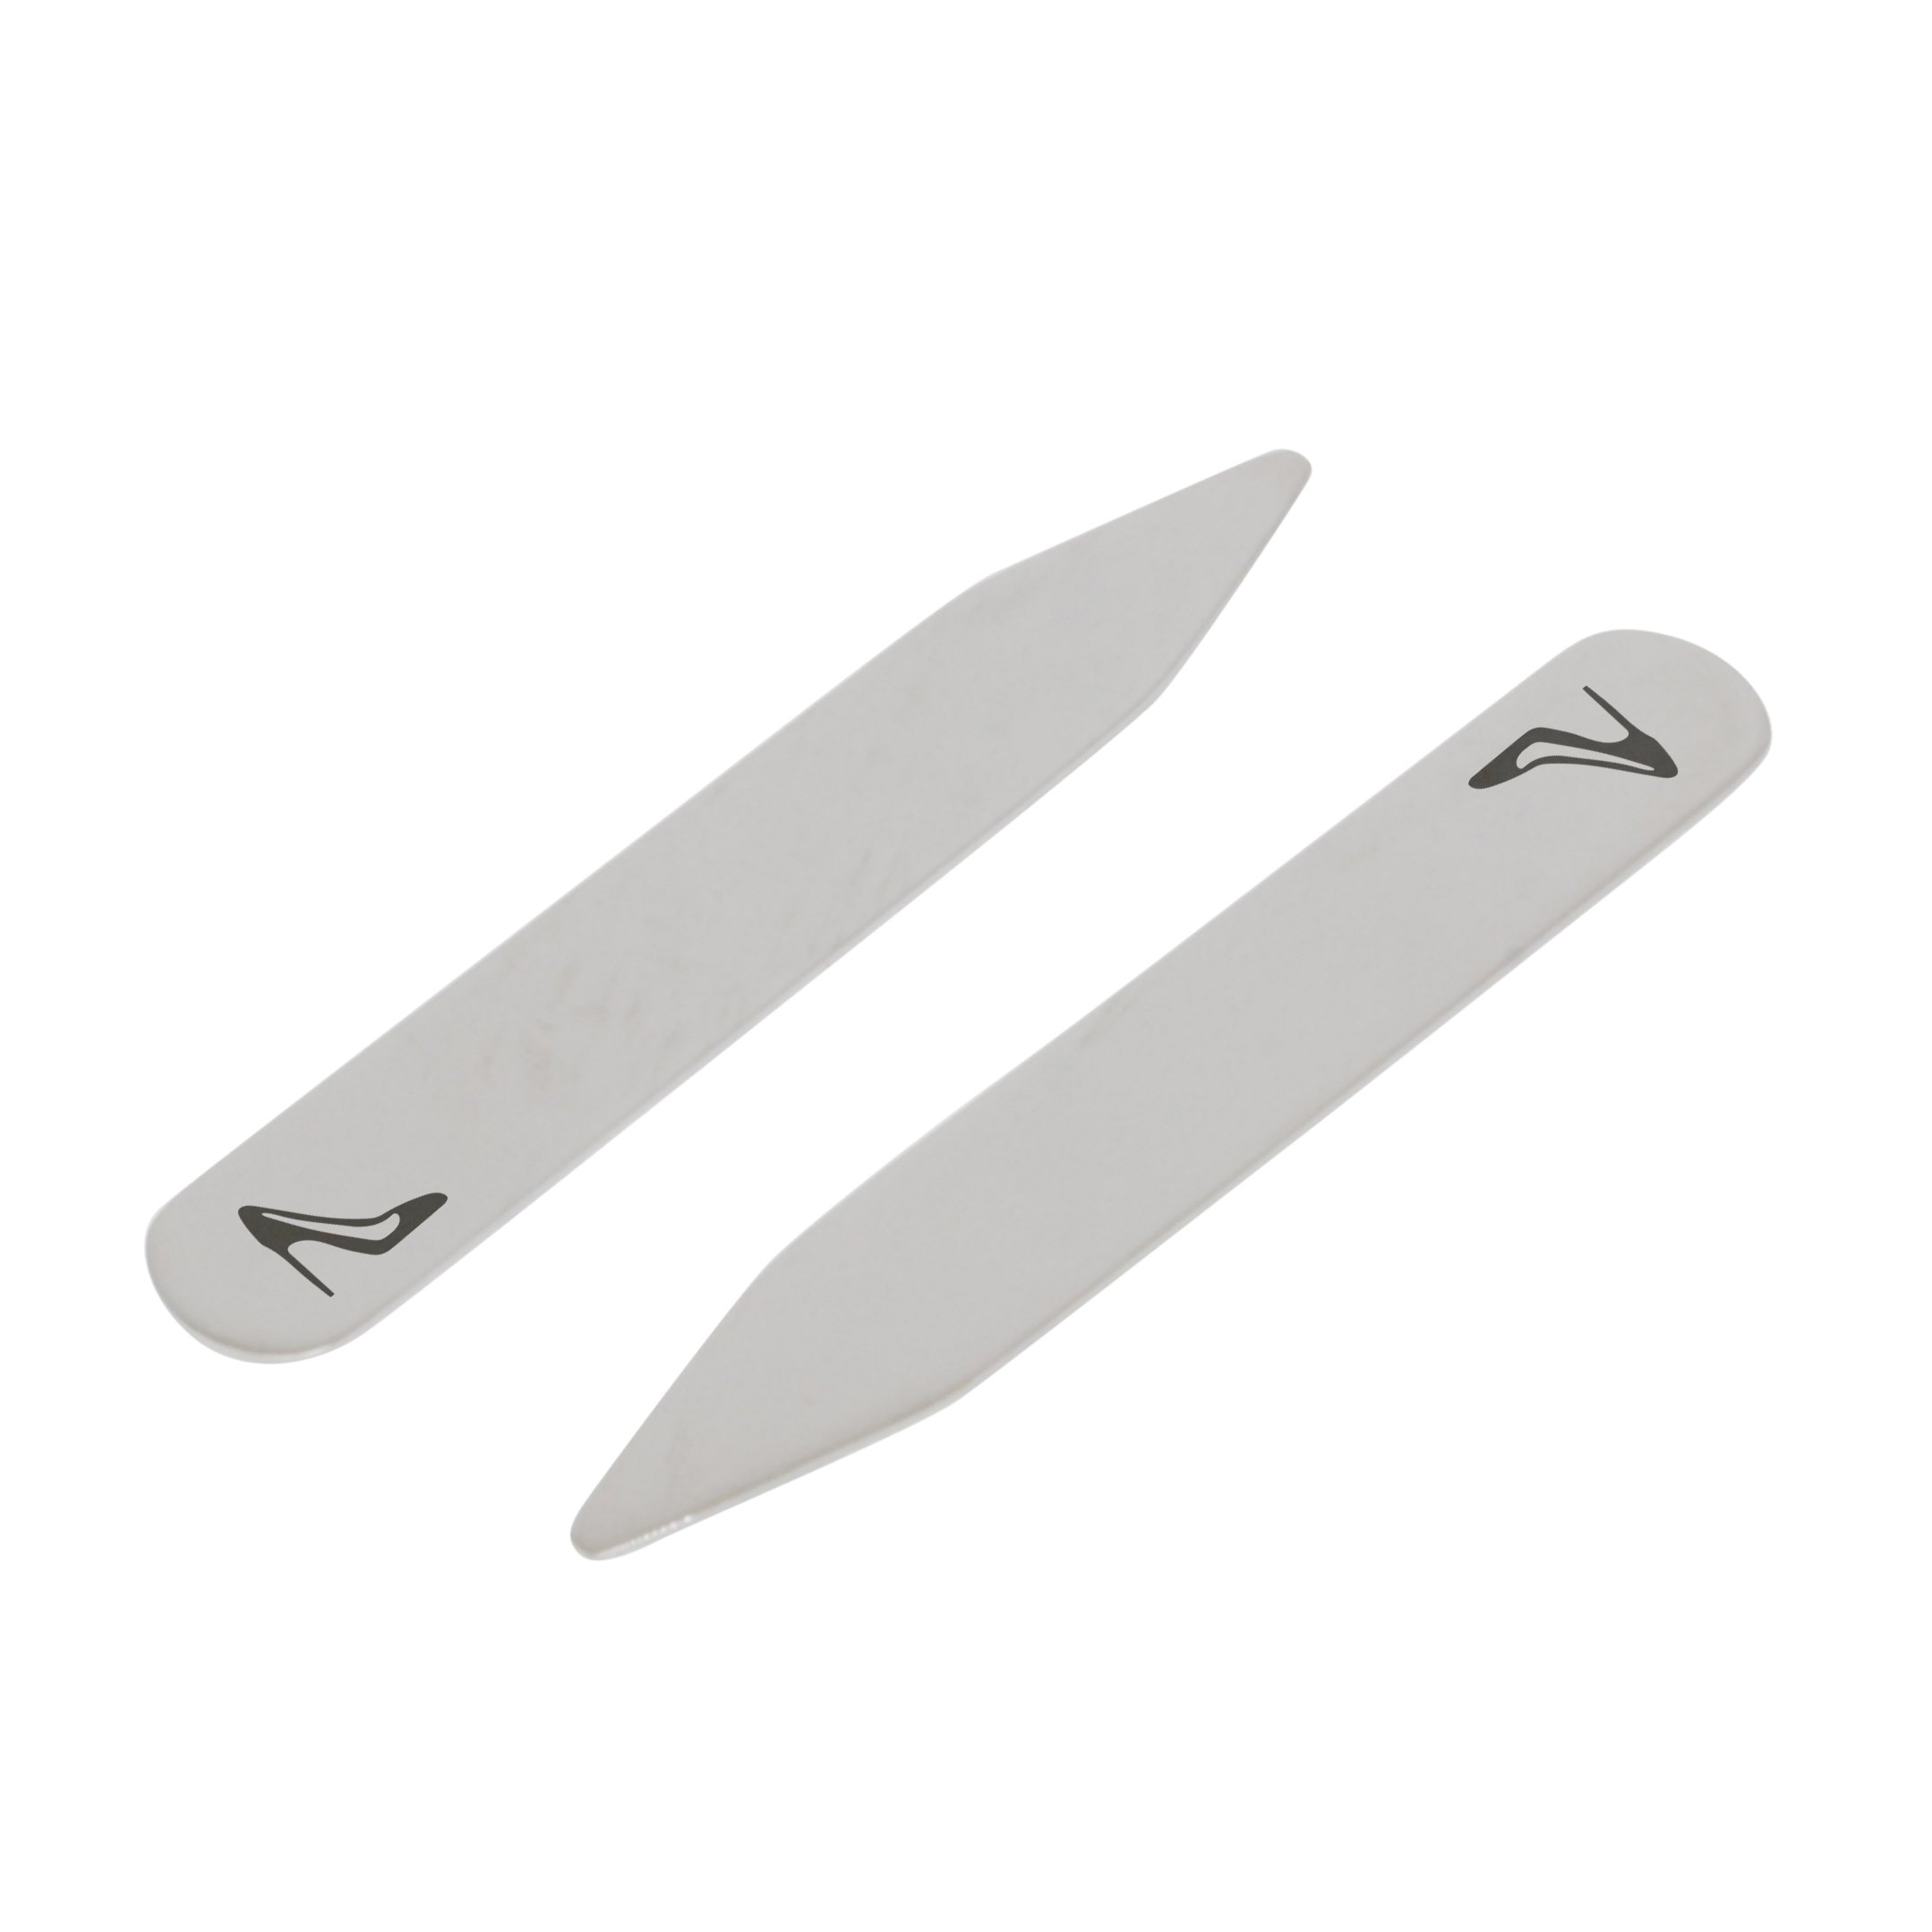 MODERN GOODS SHOP Stainless Steel Collar Stays With Laser Engraved Stiletto Design - 2.5 Inch Metal Collar Stiffeners - Made In USA